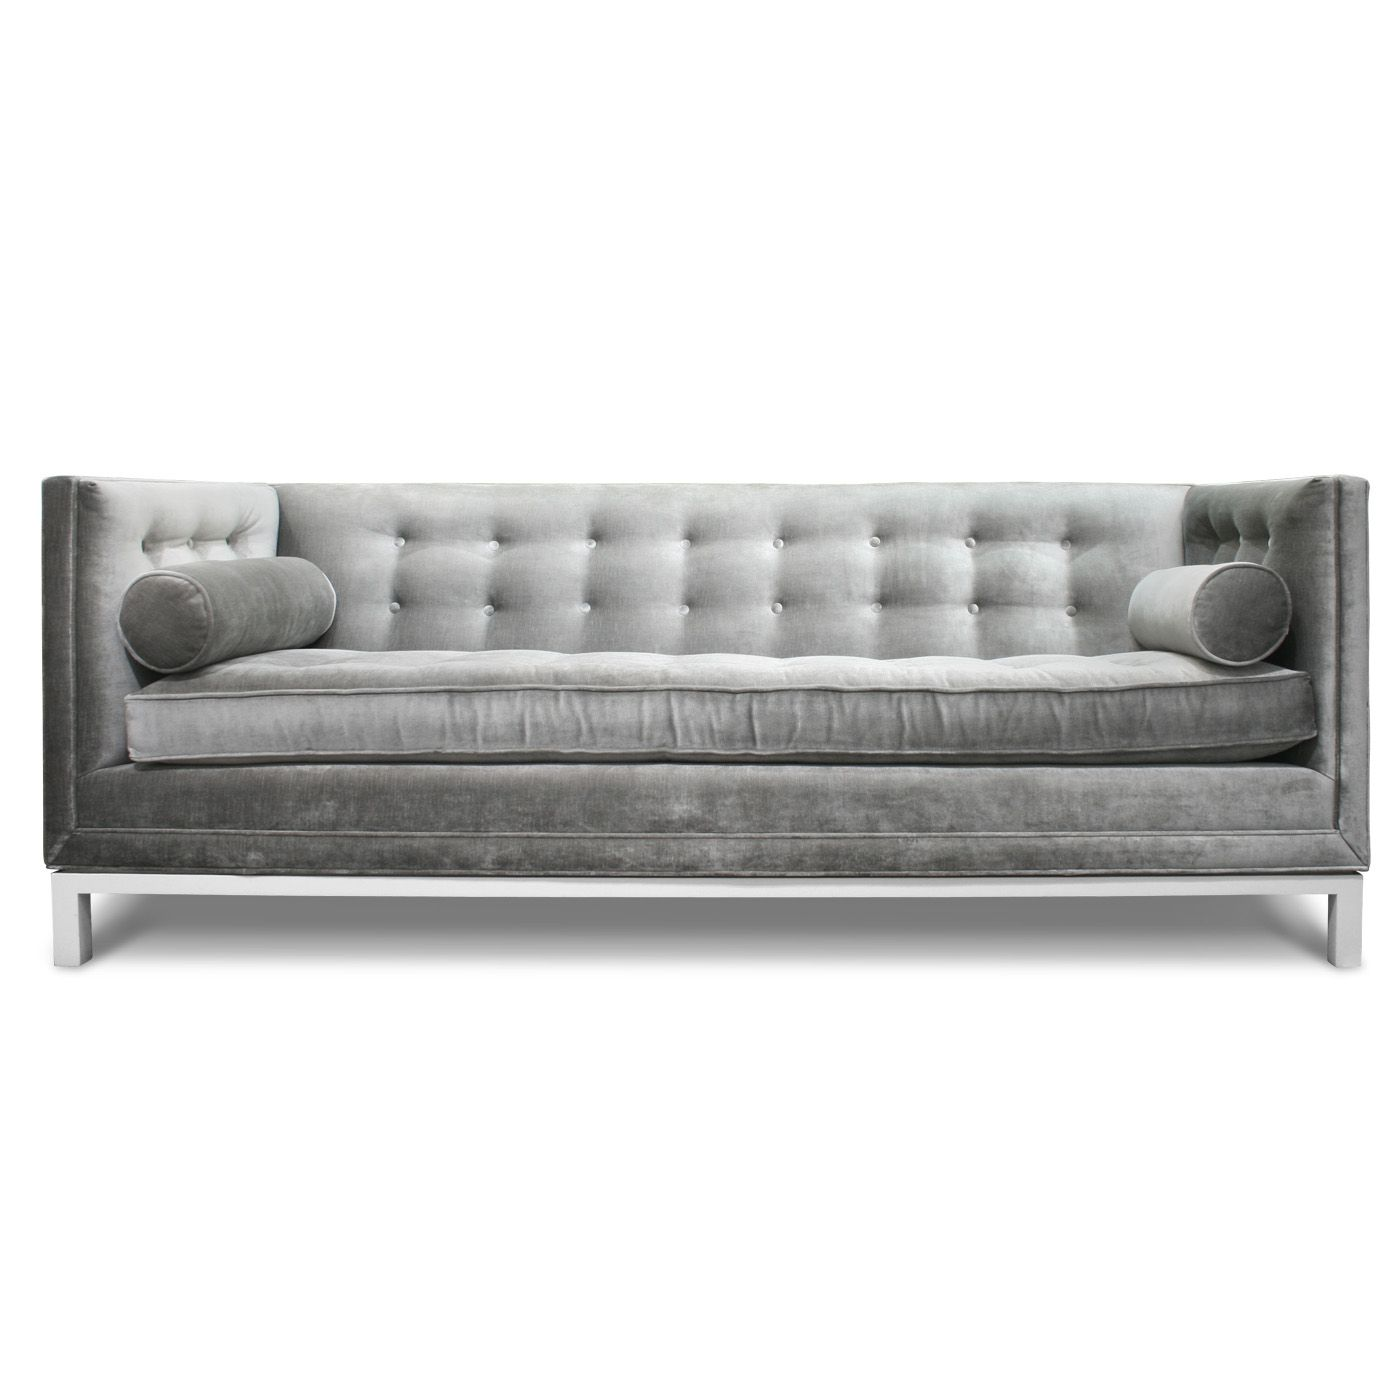 High Quality Jonathan Adler Lampert Sofa. I Donu0027t Love The Shiny Fabric But I Love